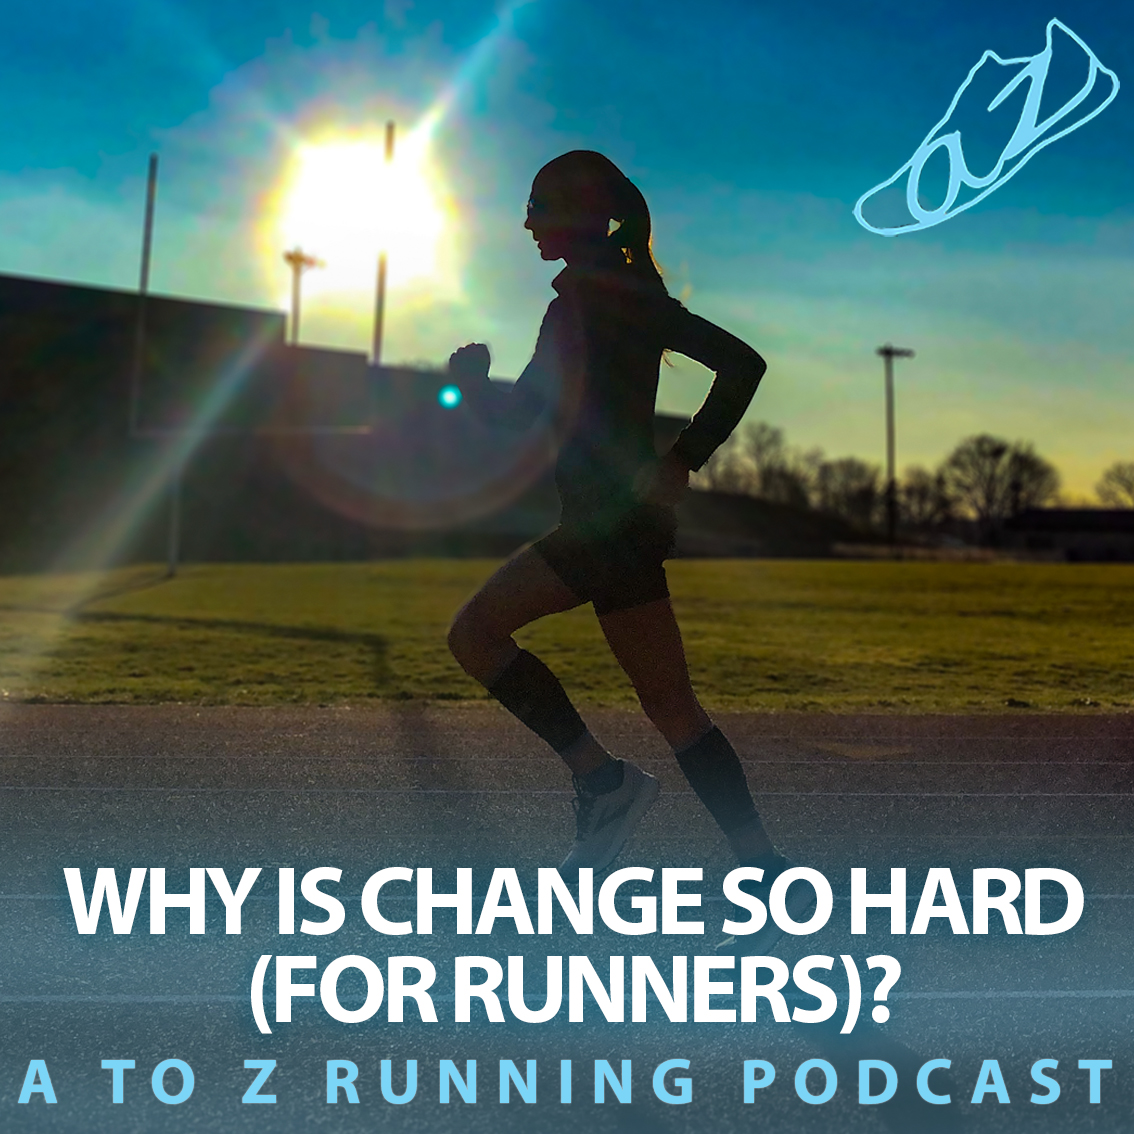 Why is change so hard for runners